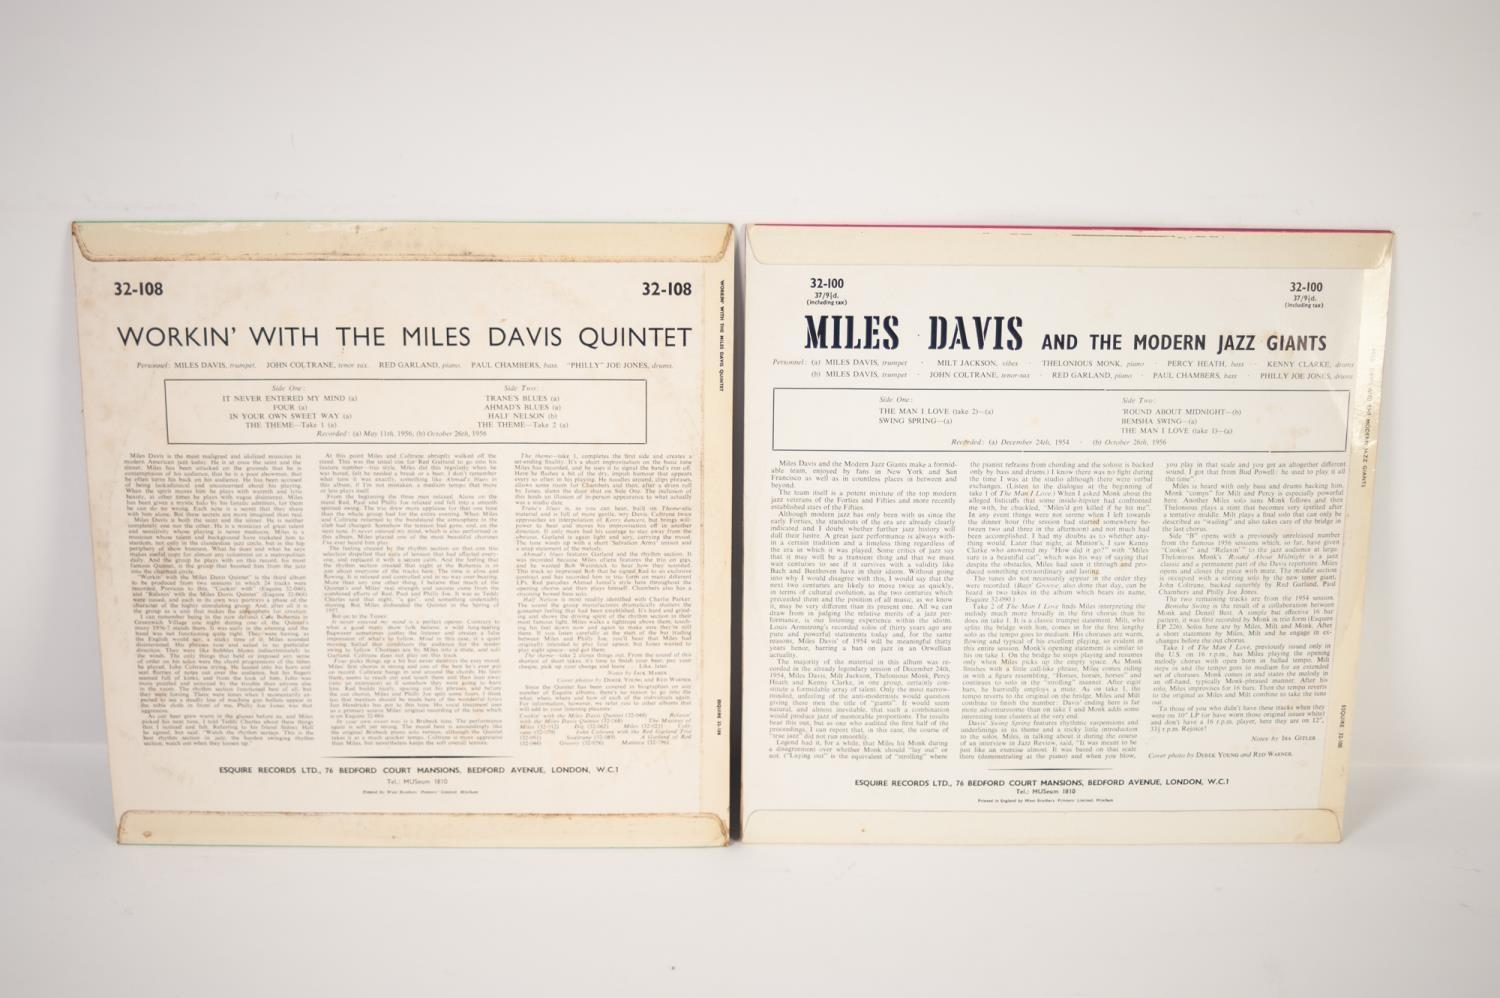 JAZZ, VINYL RECORDS- D IS FOR MILES DAVIS- WORKIN? WITH THE MILES DAVIS QUINTET, Esquire (32-108), - Image 2 of 4